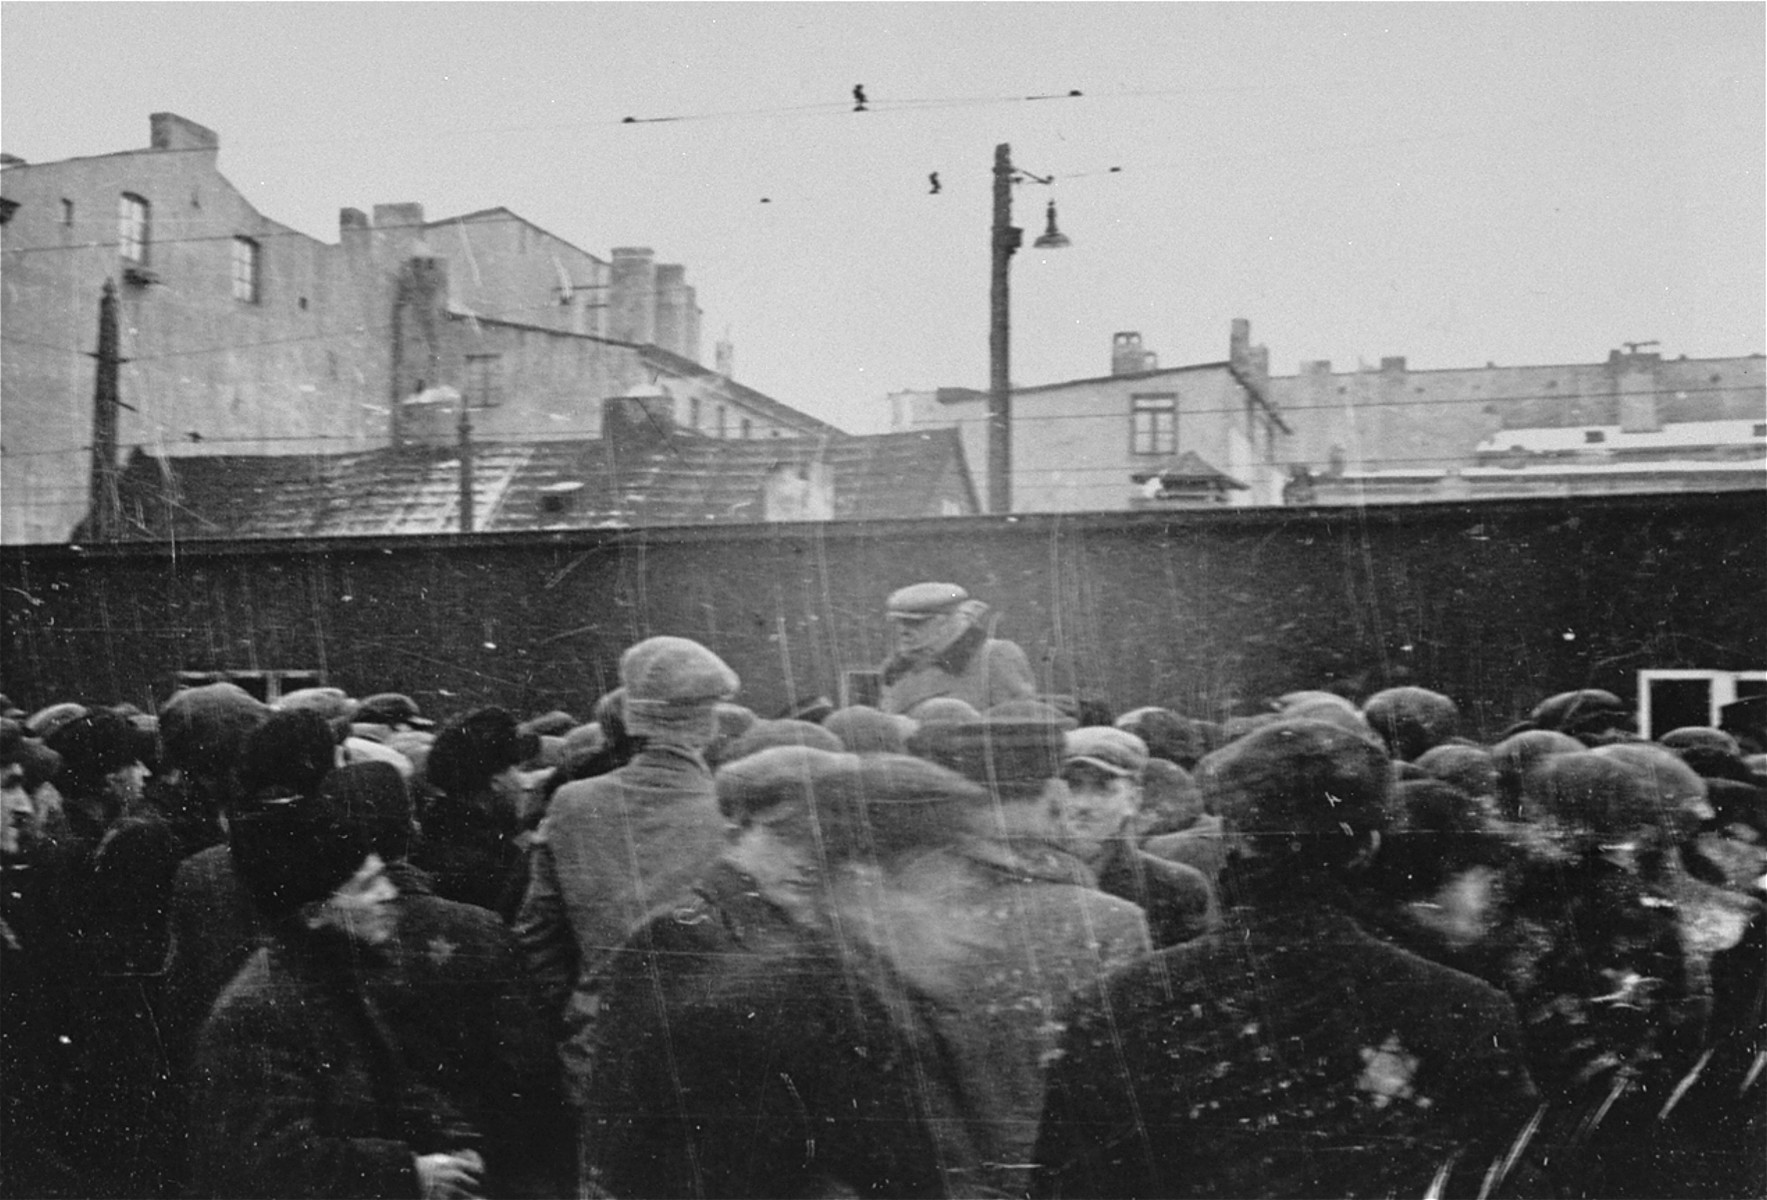 Jewish council chairman Mordechai Chaim Rumkowski speaks to a large crowd at an outdoor meeting in the Lodz ghetto.